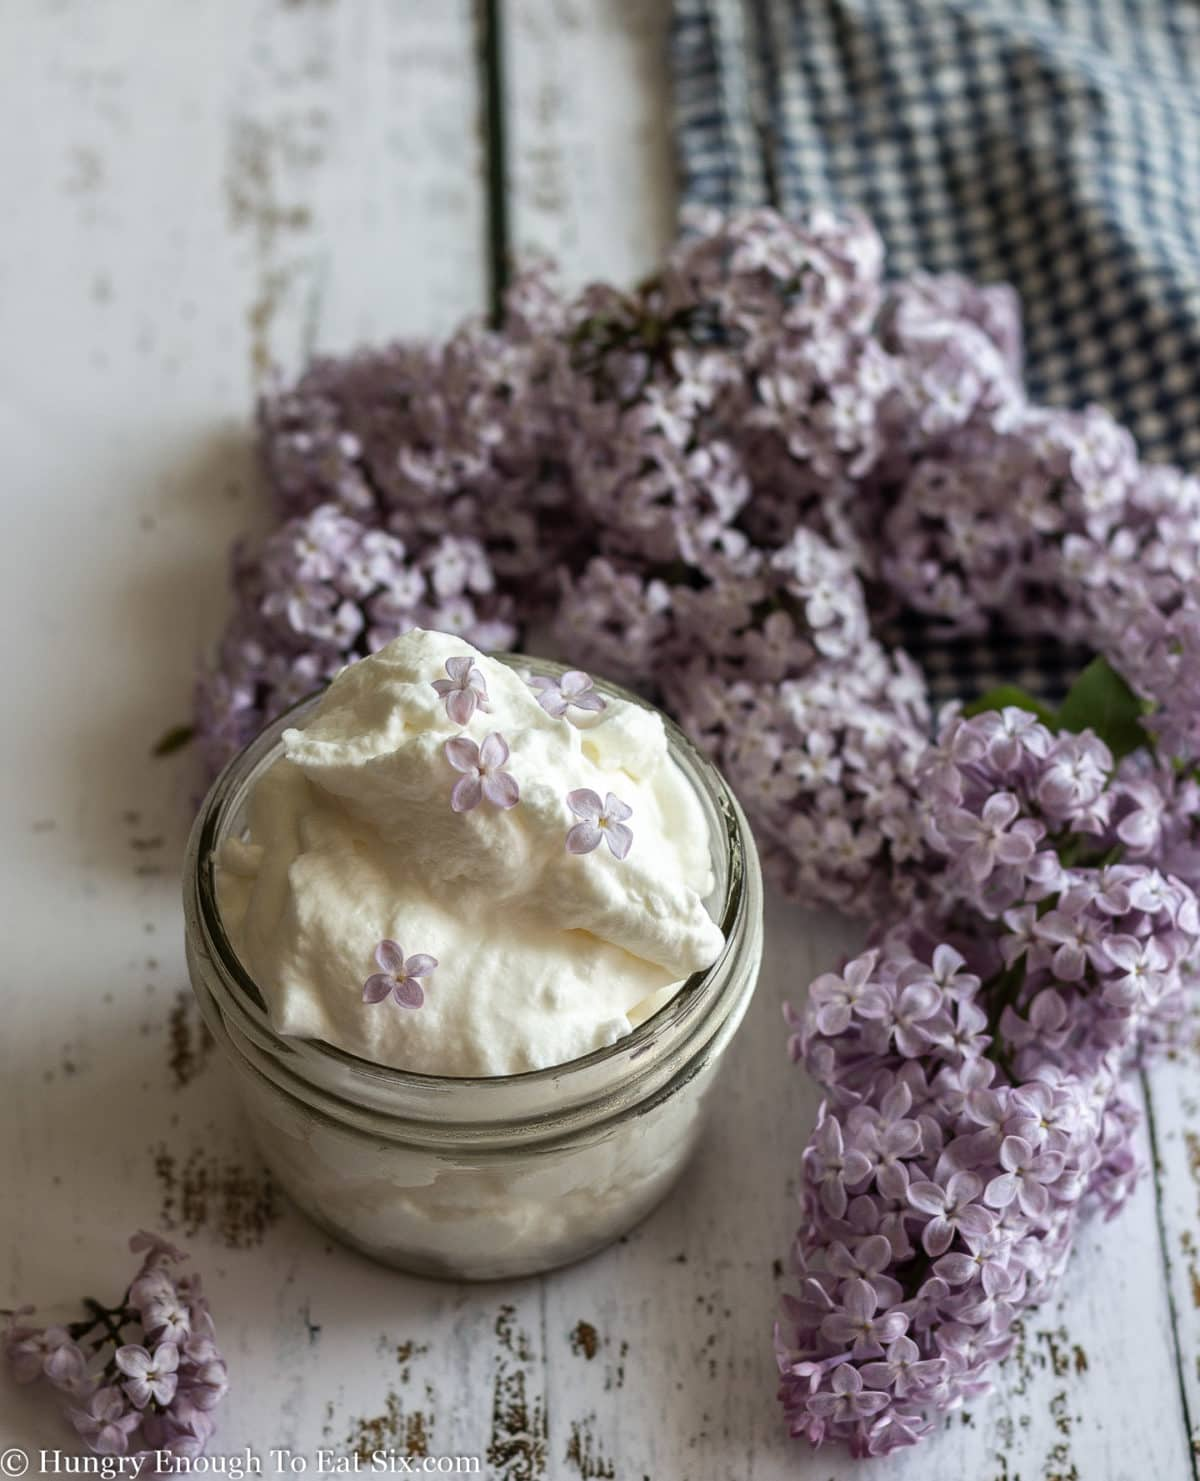 Jar of whipped cream and sprigs of lilacs laying on a white wooden surface.